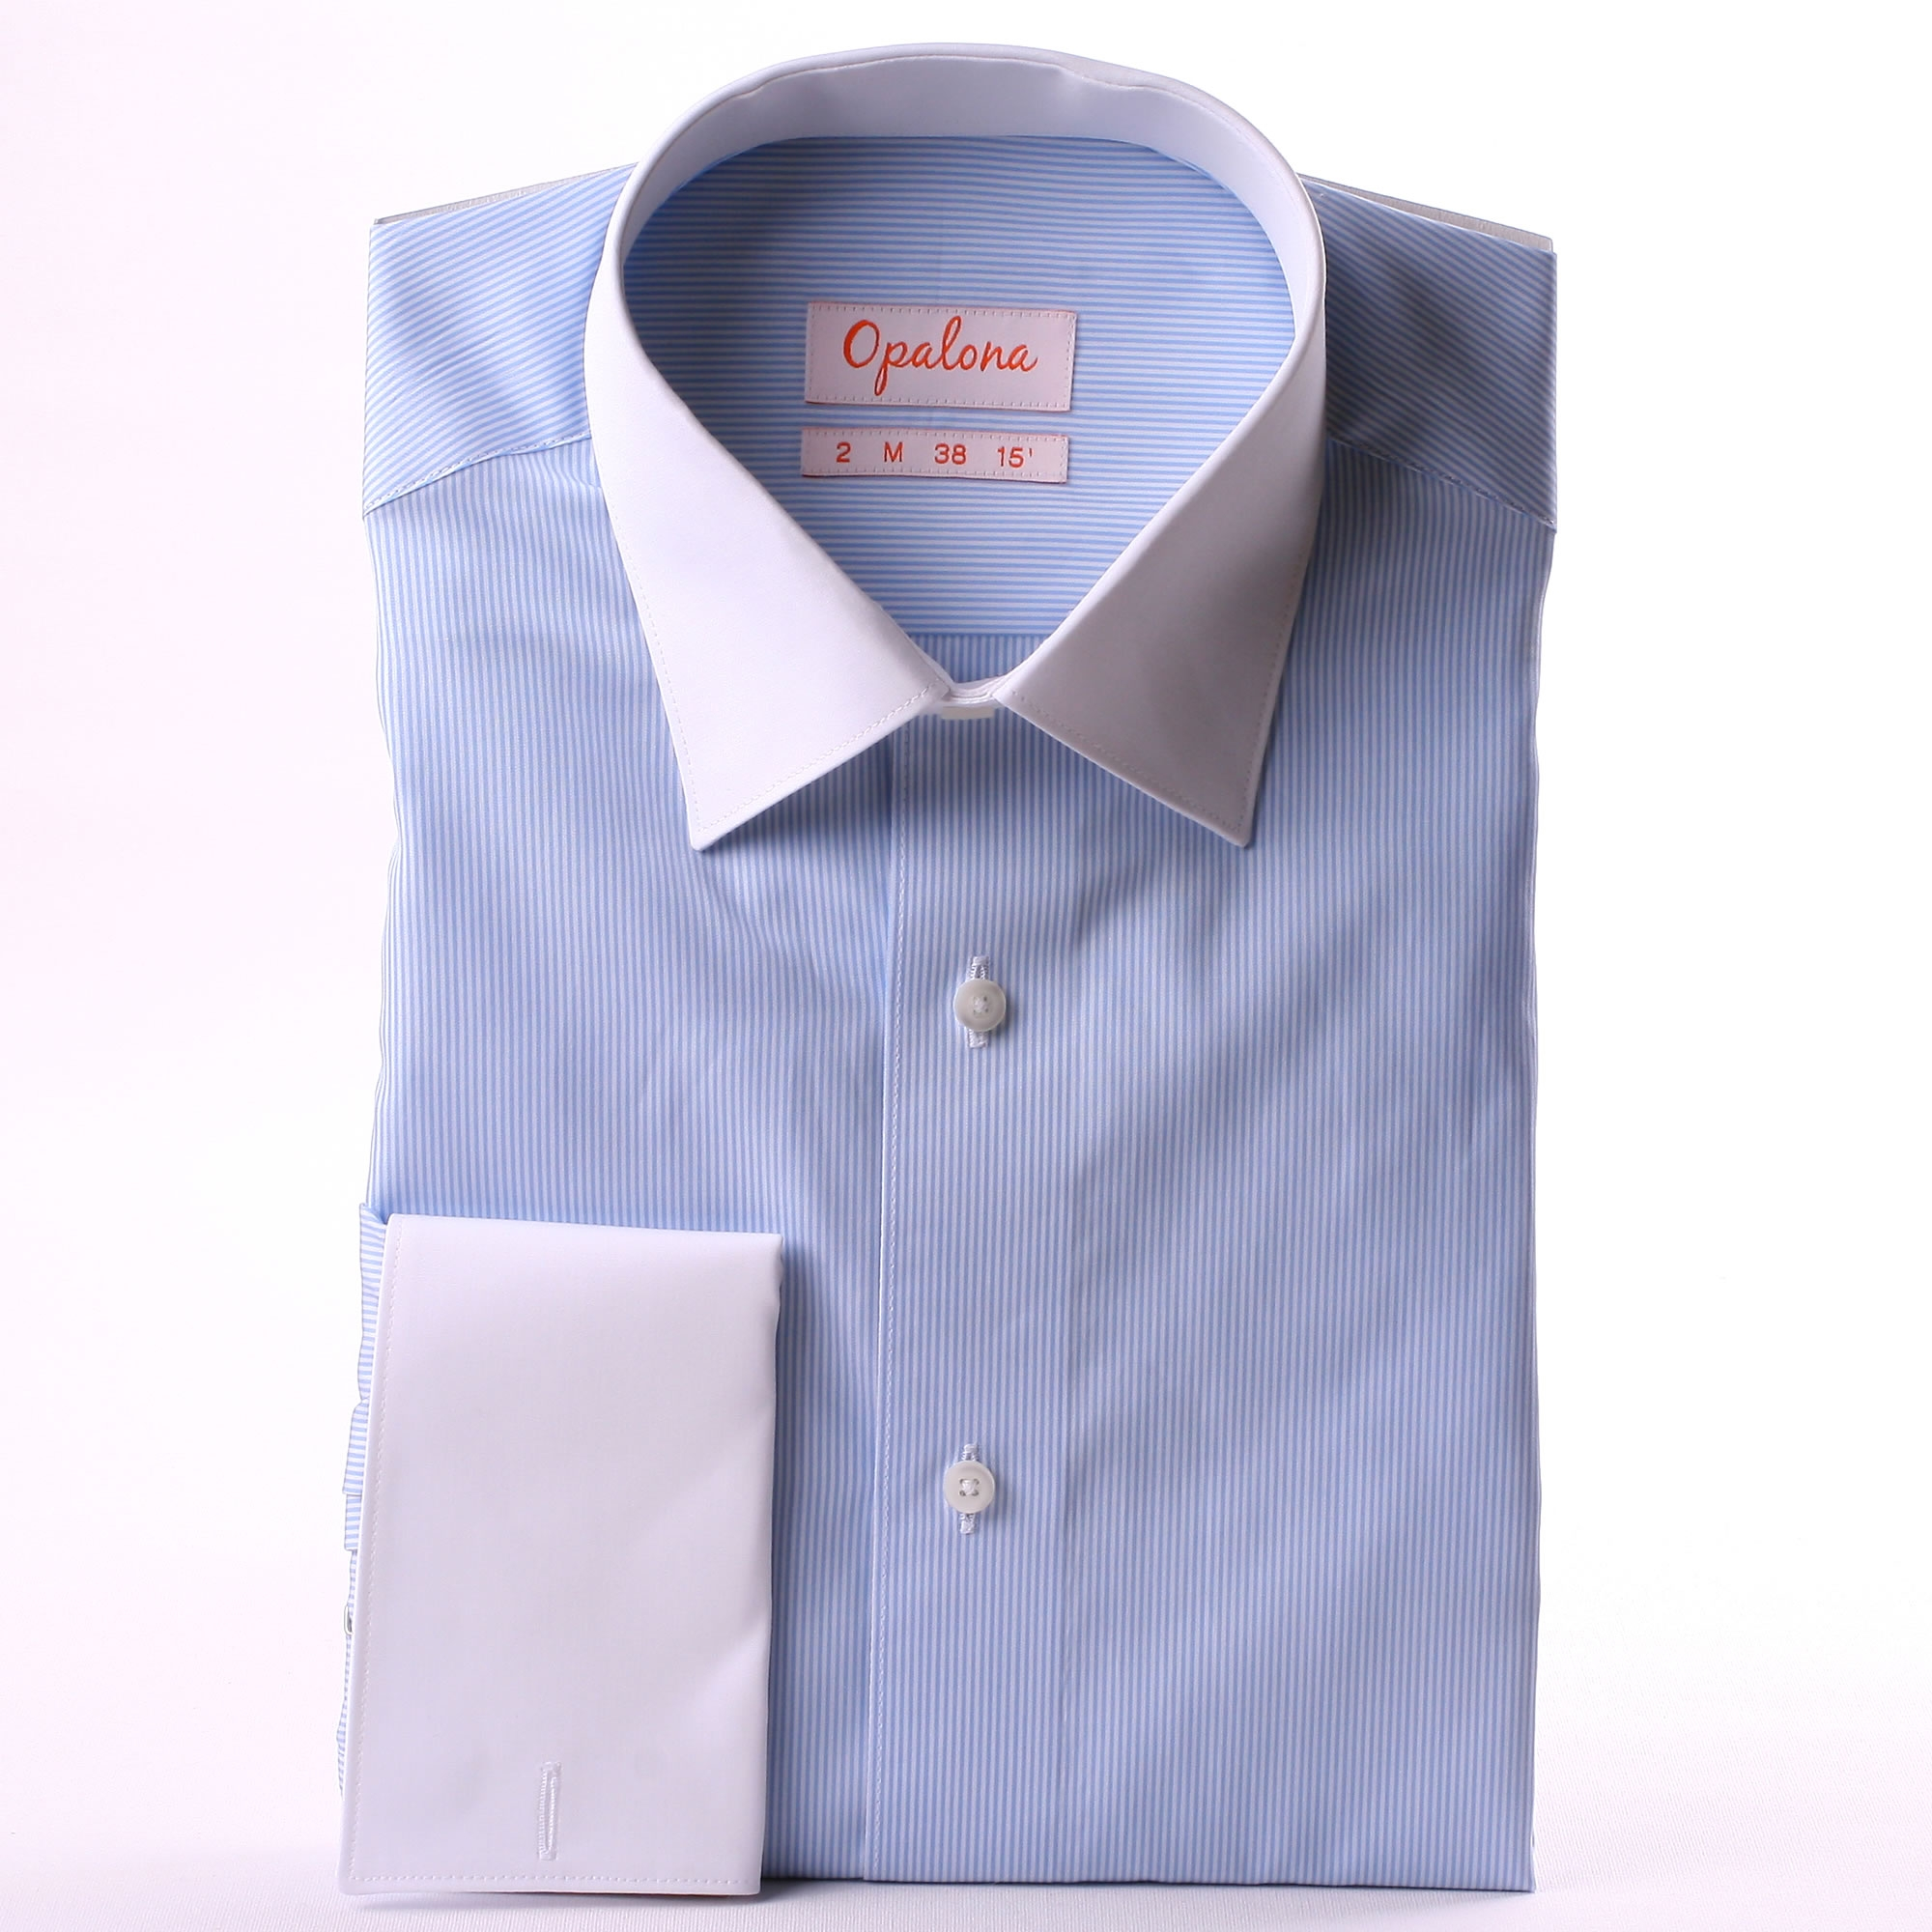 White And Blue Striped French Cuff Shirt With White Collar